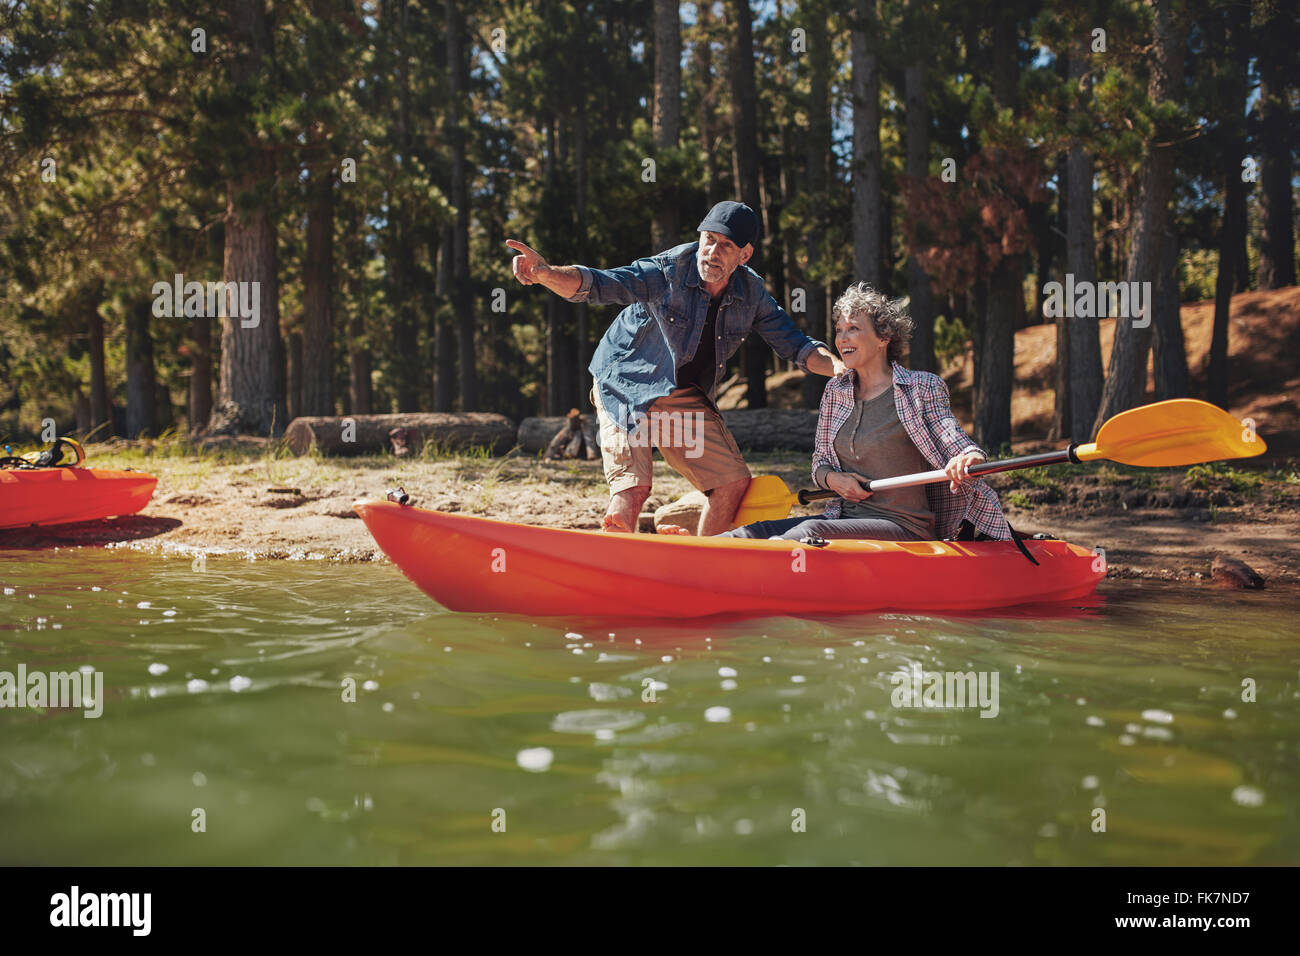 Portrait of mature man with a woman in a kayak in the lake. man showing something interesting to woman holding paddles. - Stock Image